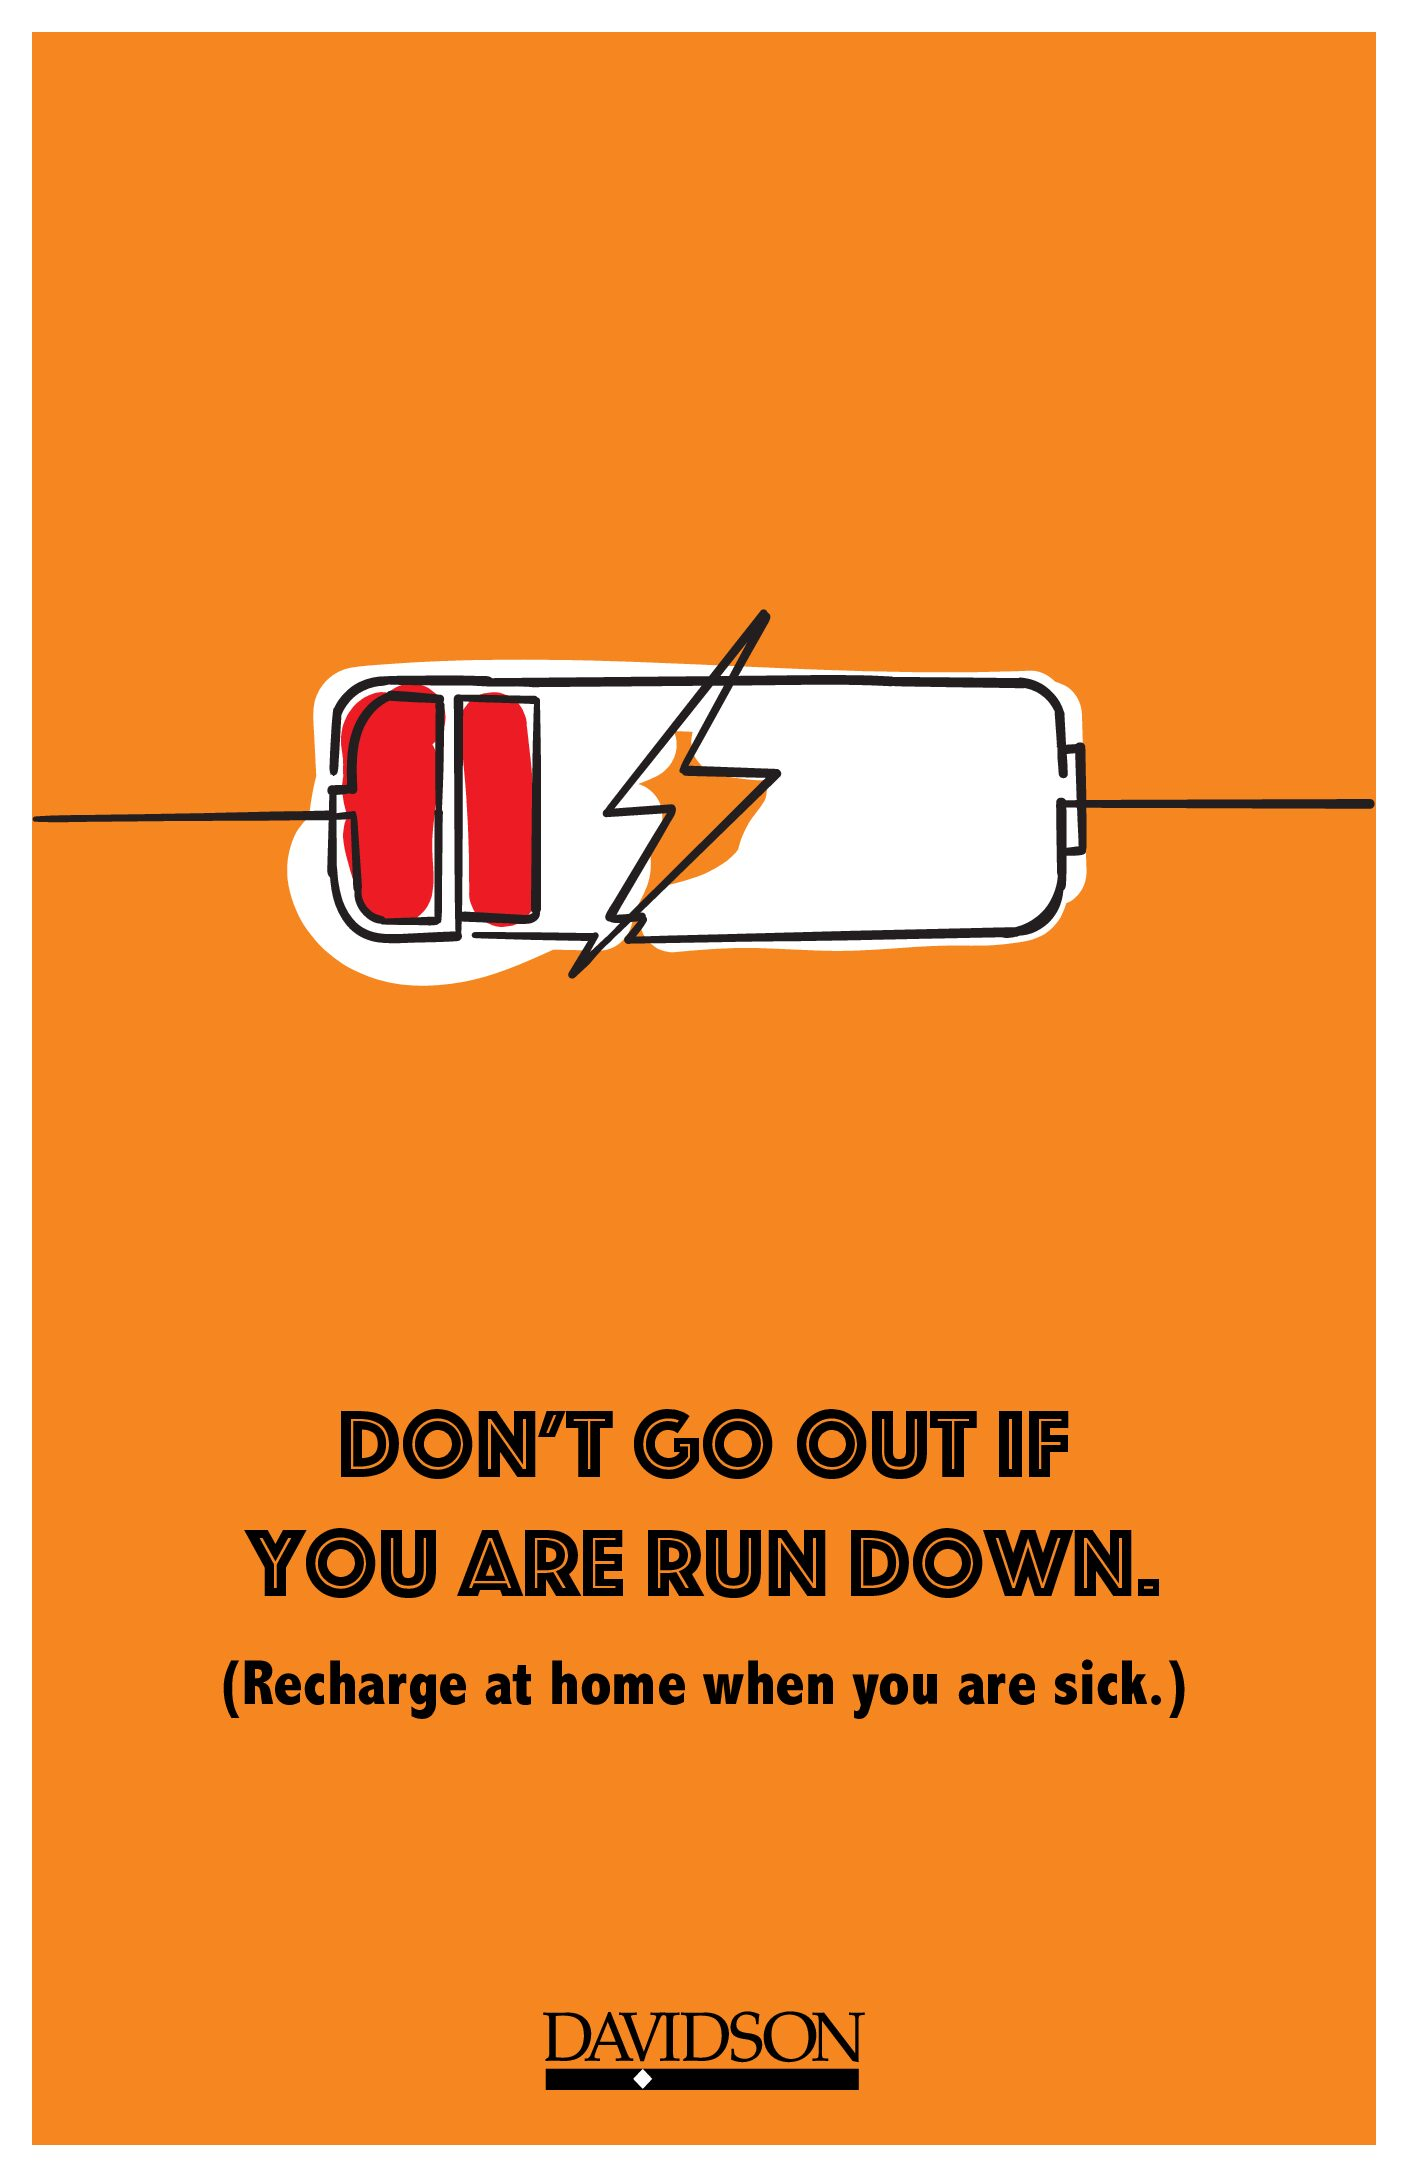 """""""Don't go out if you are run down. Recharge at home if you are sick"""" with low-battery sketch"""